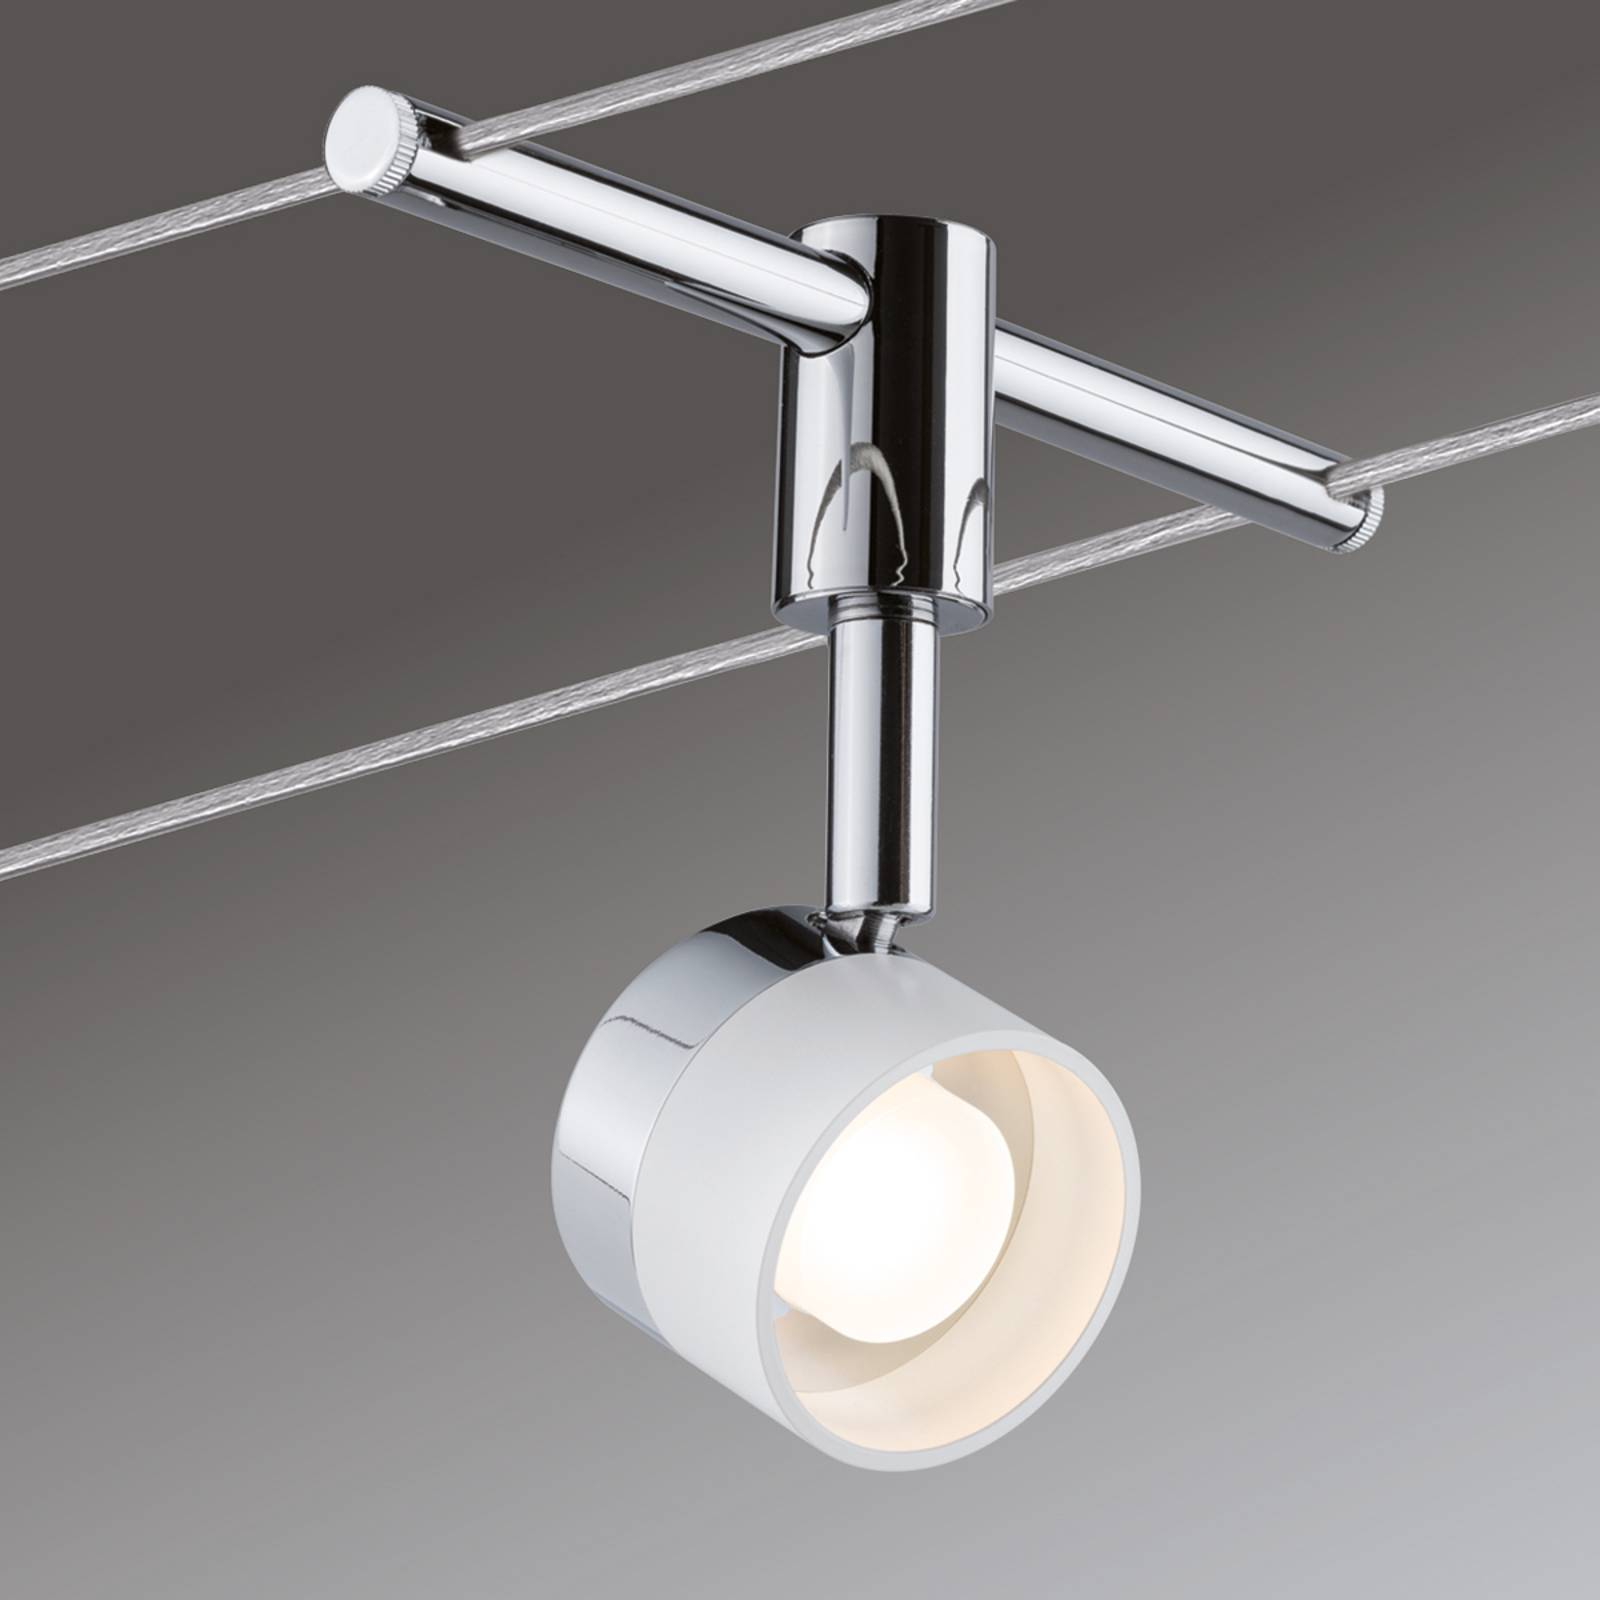 With 4 round lights - LED cable system Stage from Paulmann